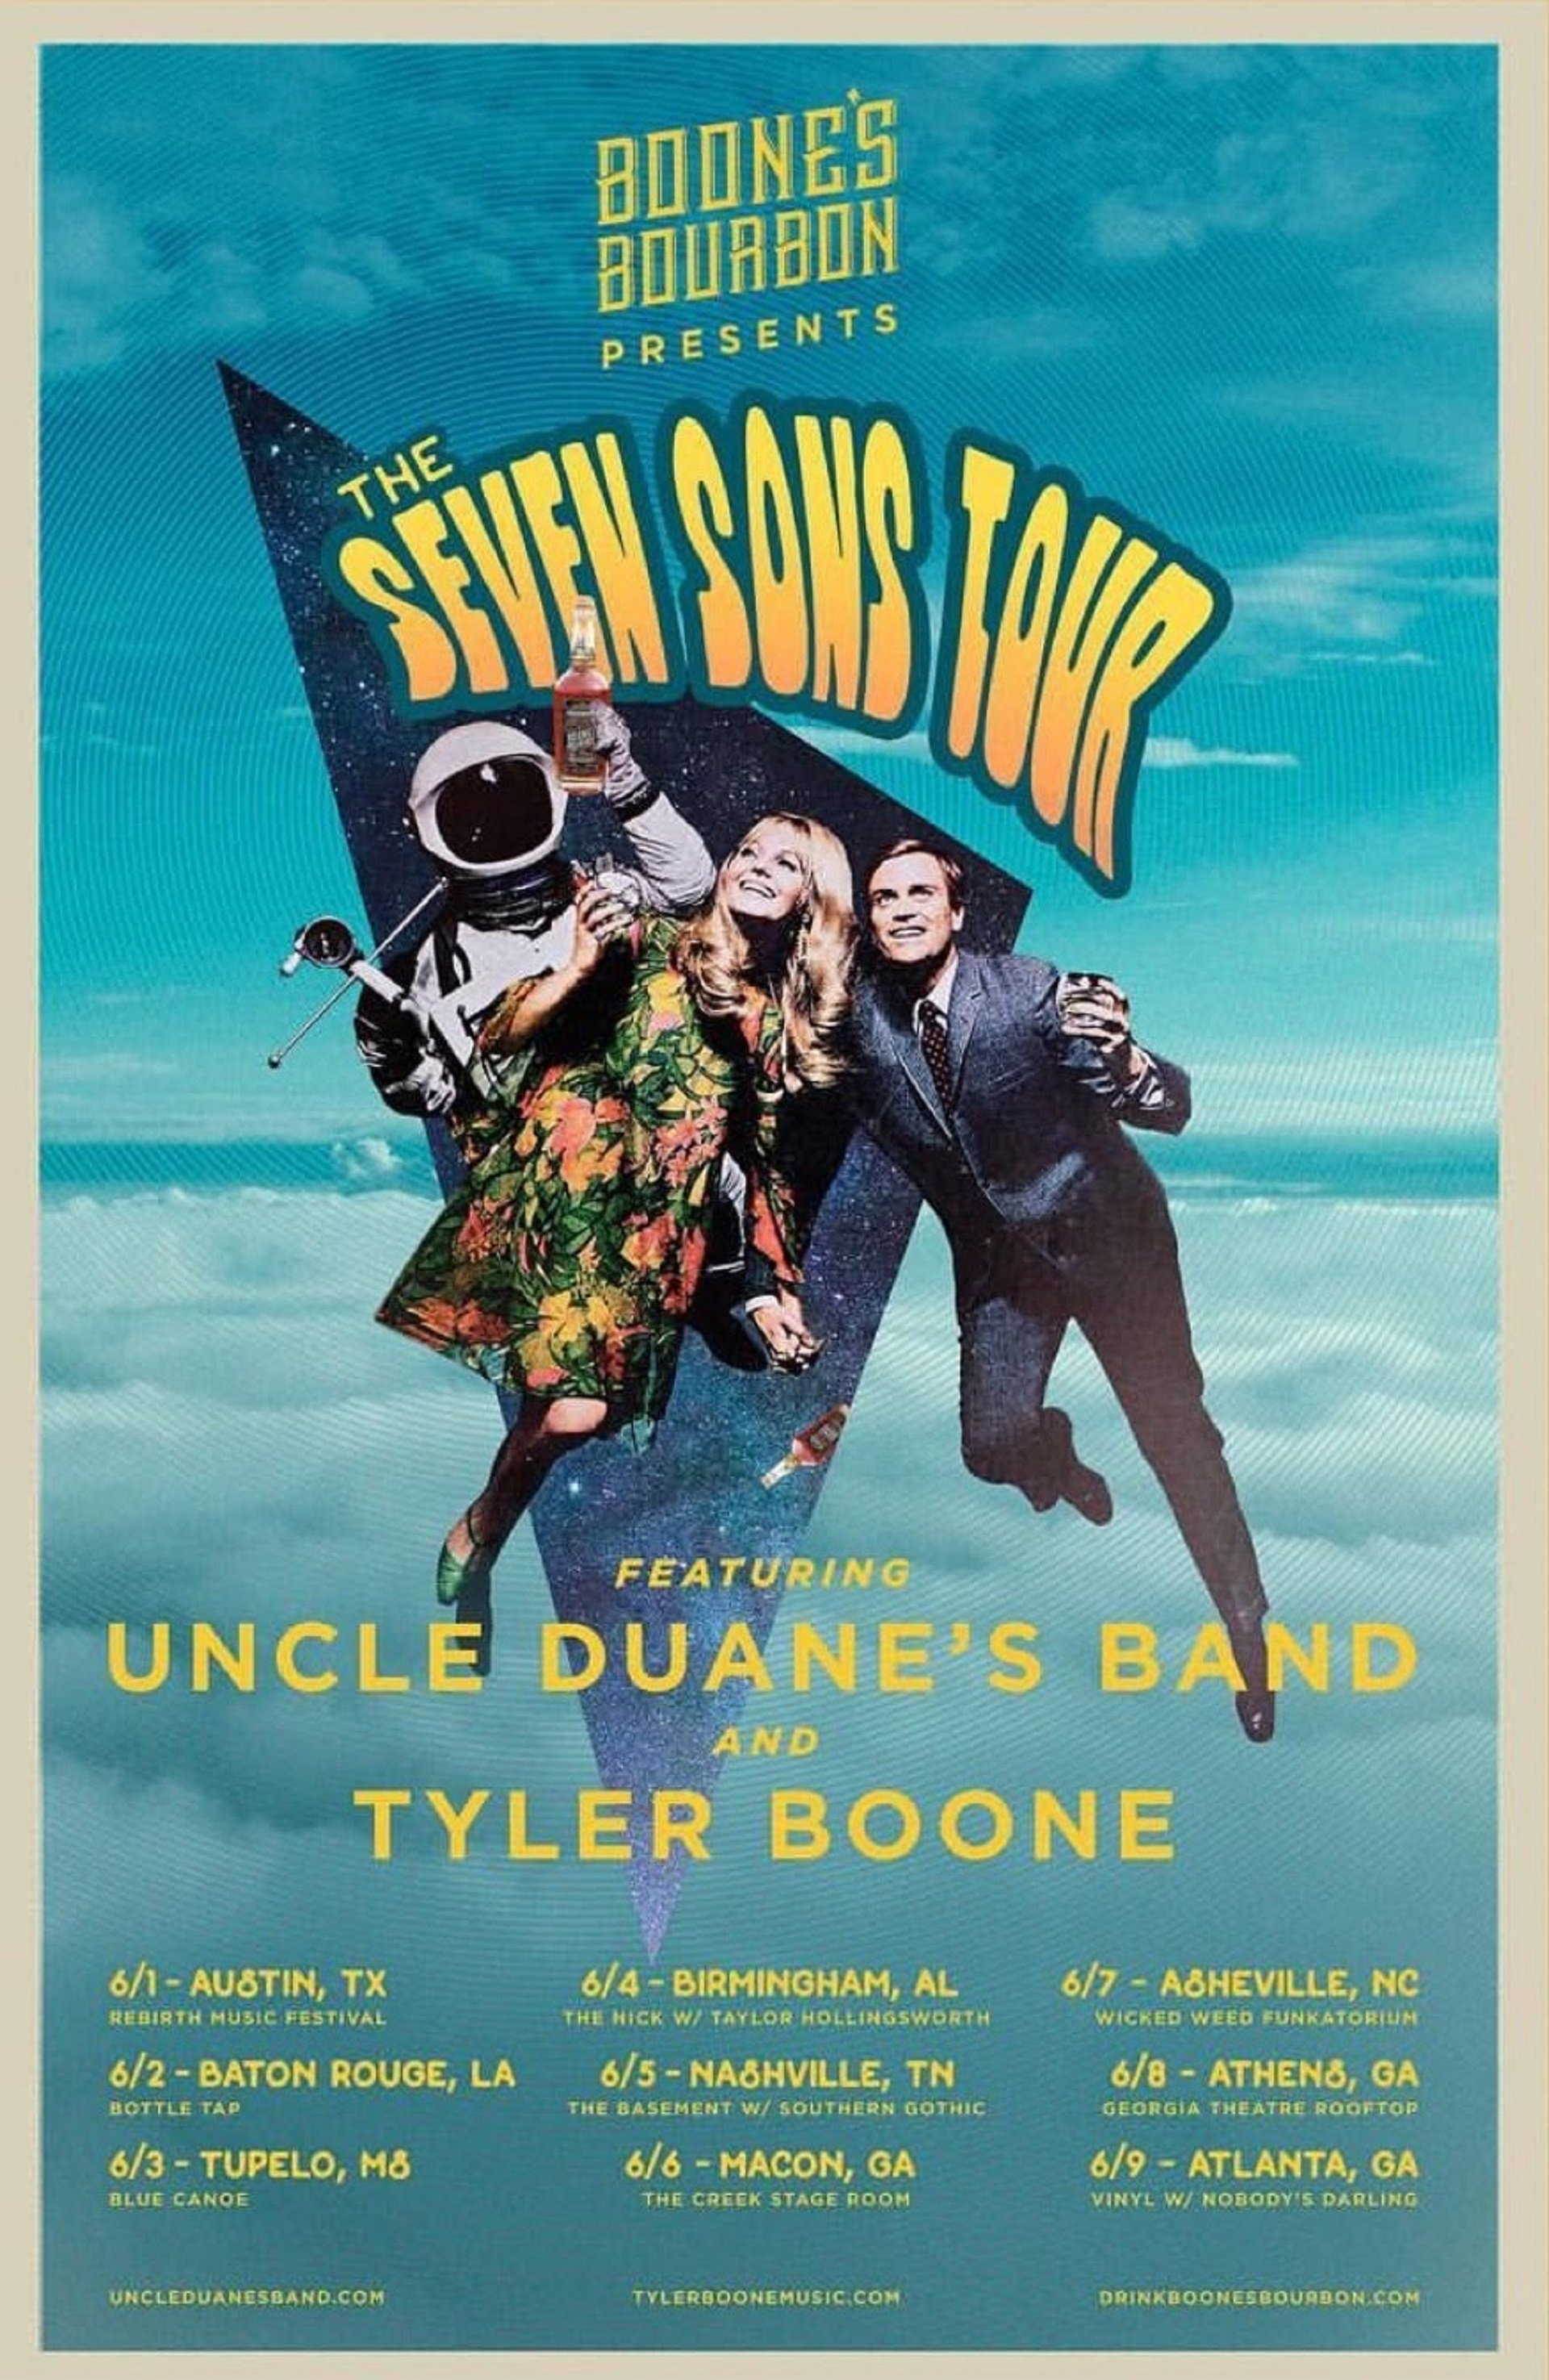 Introducing Uncle Duane's Band